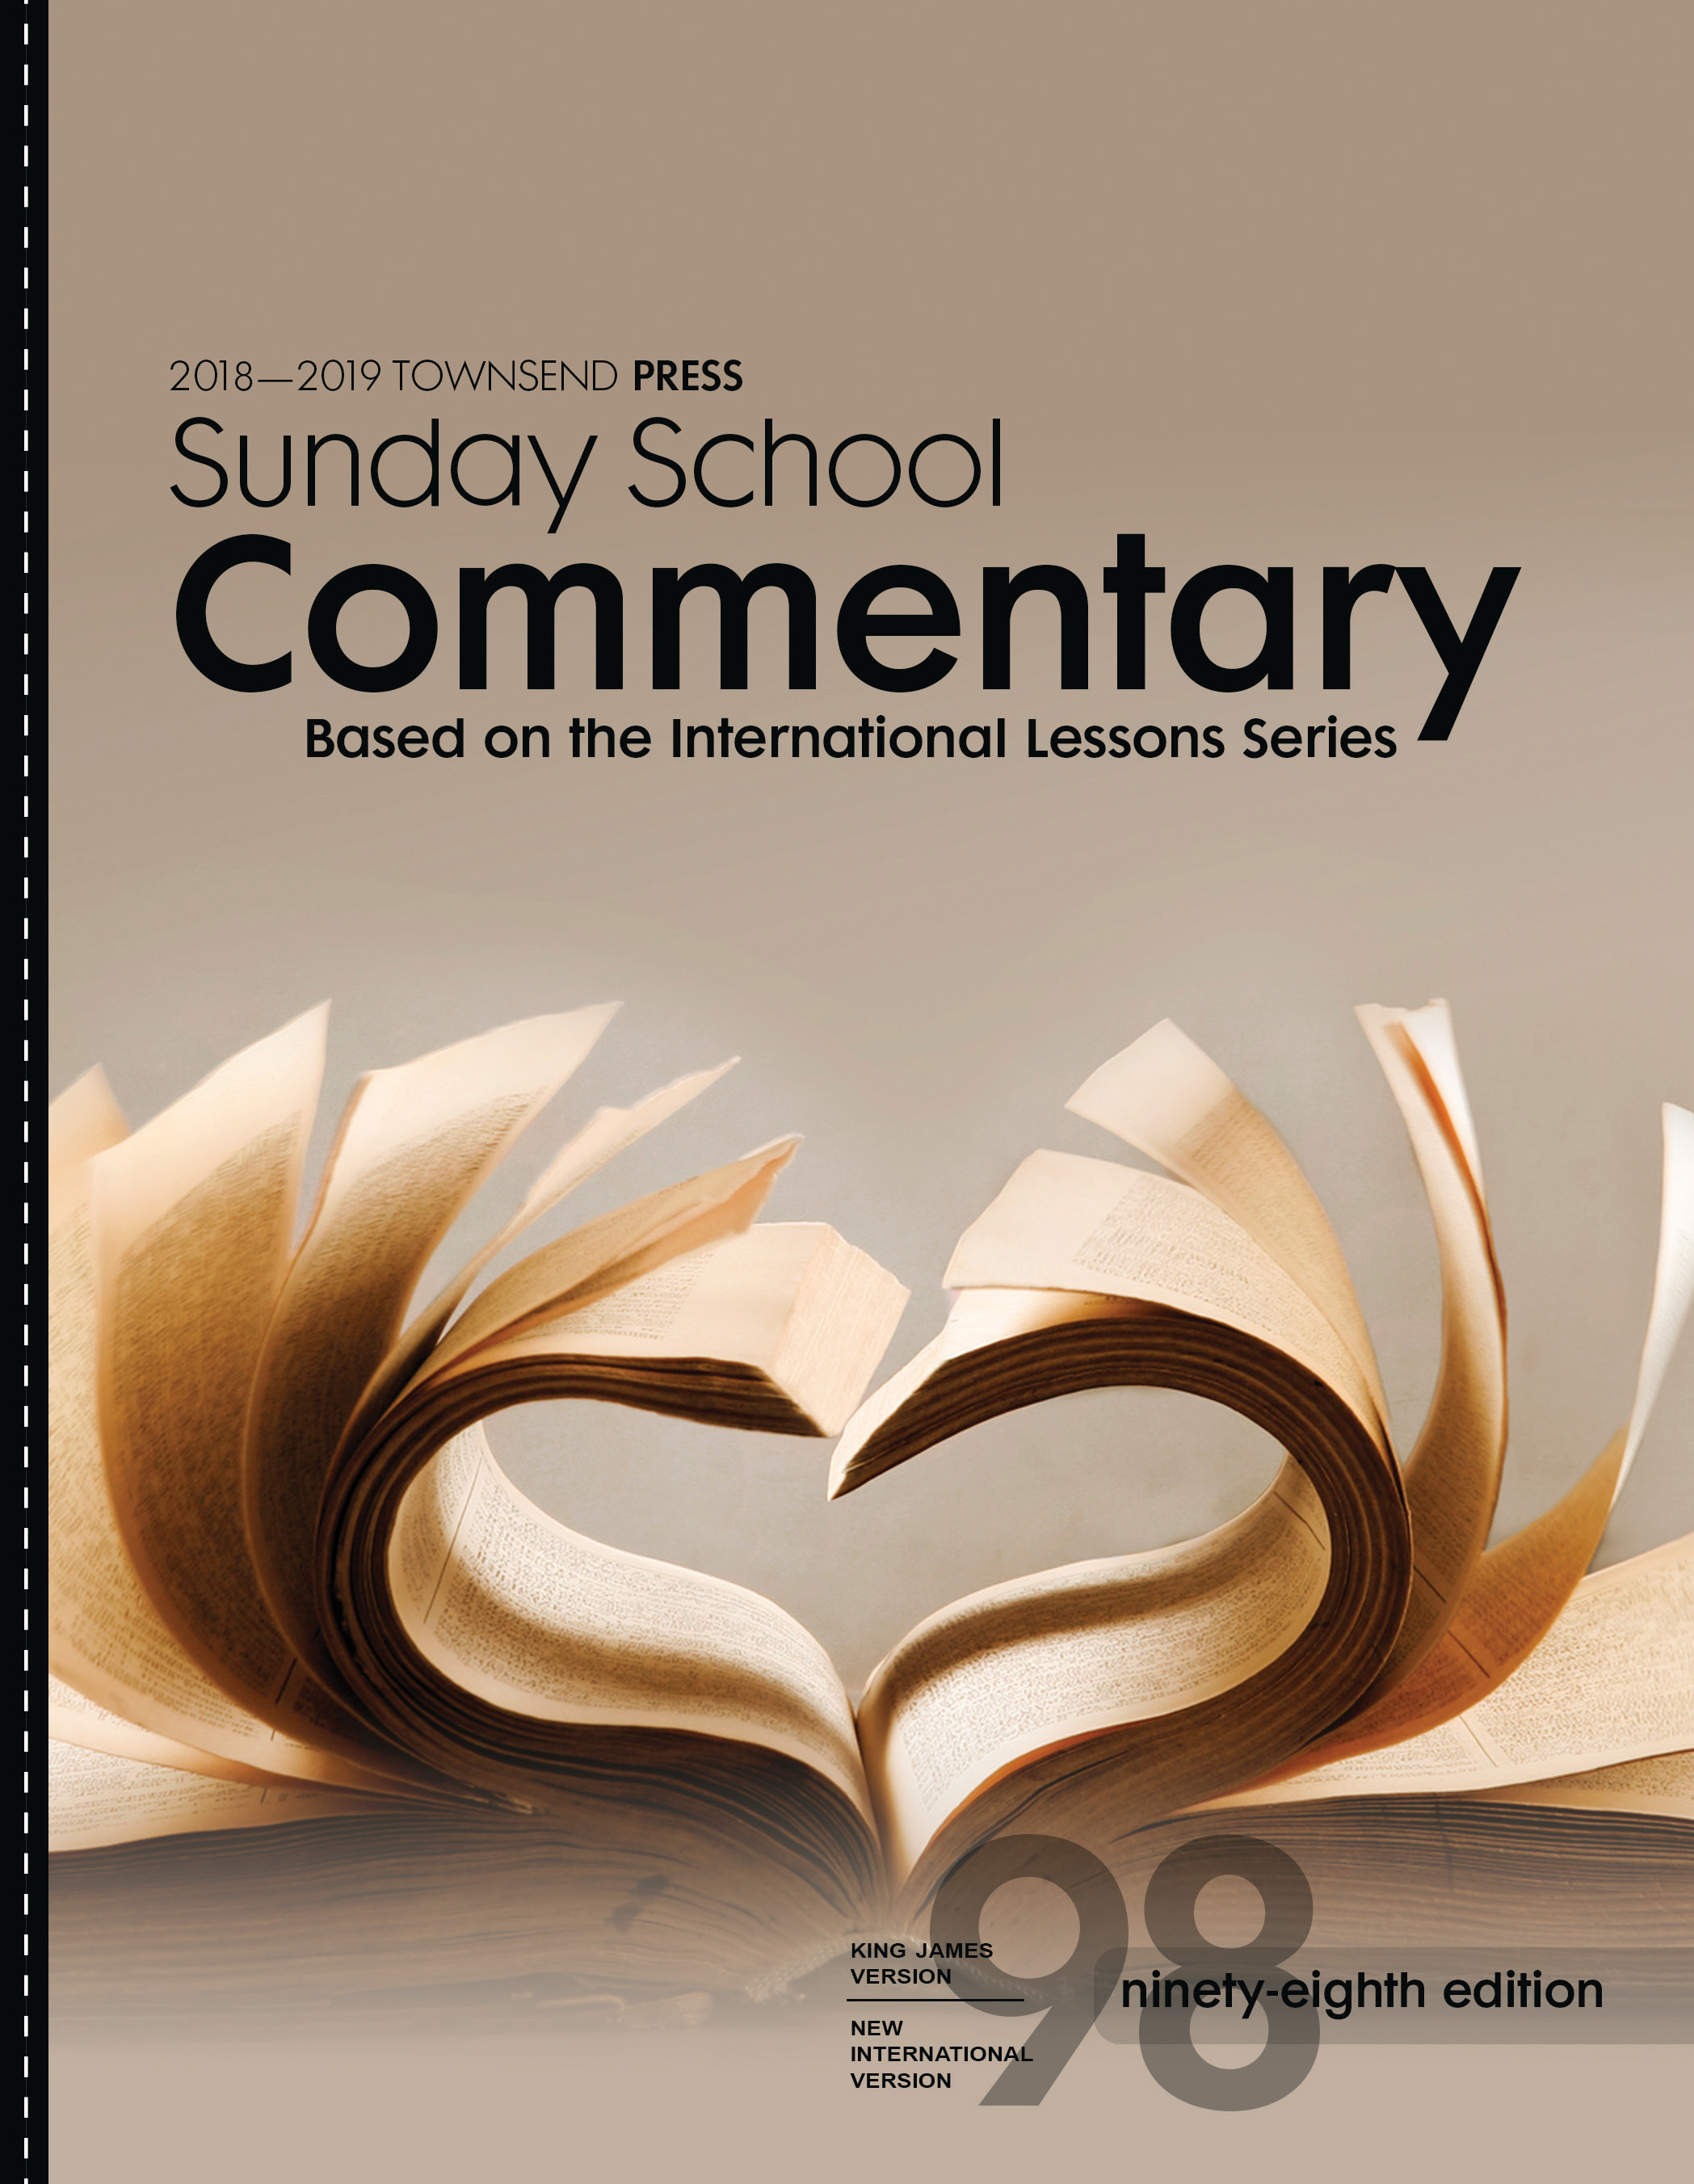 Sunday School Book Cover : Townsend press sunday school commentary th